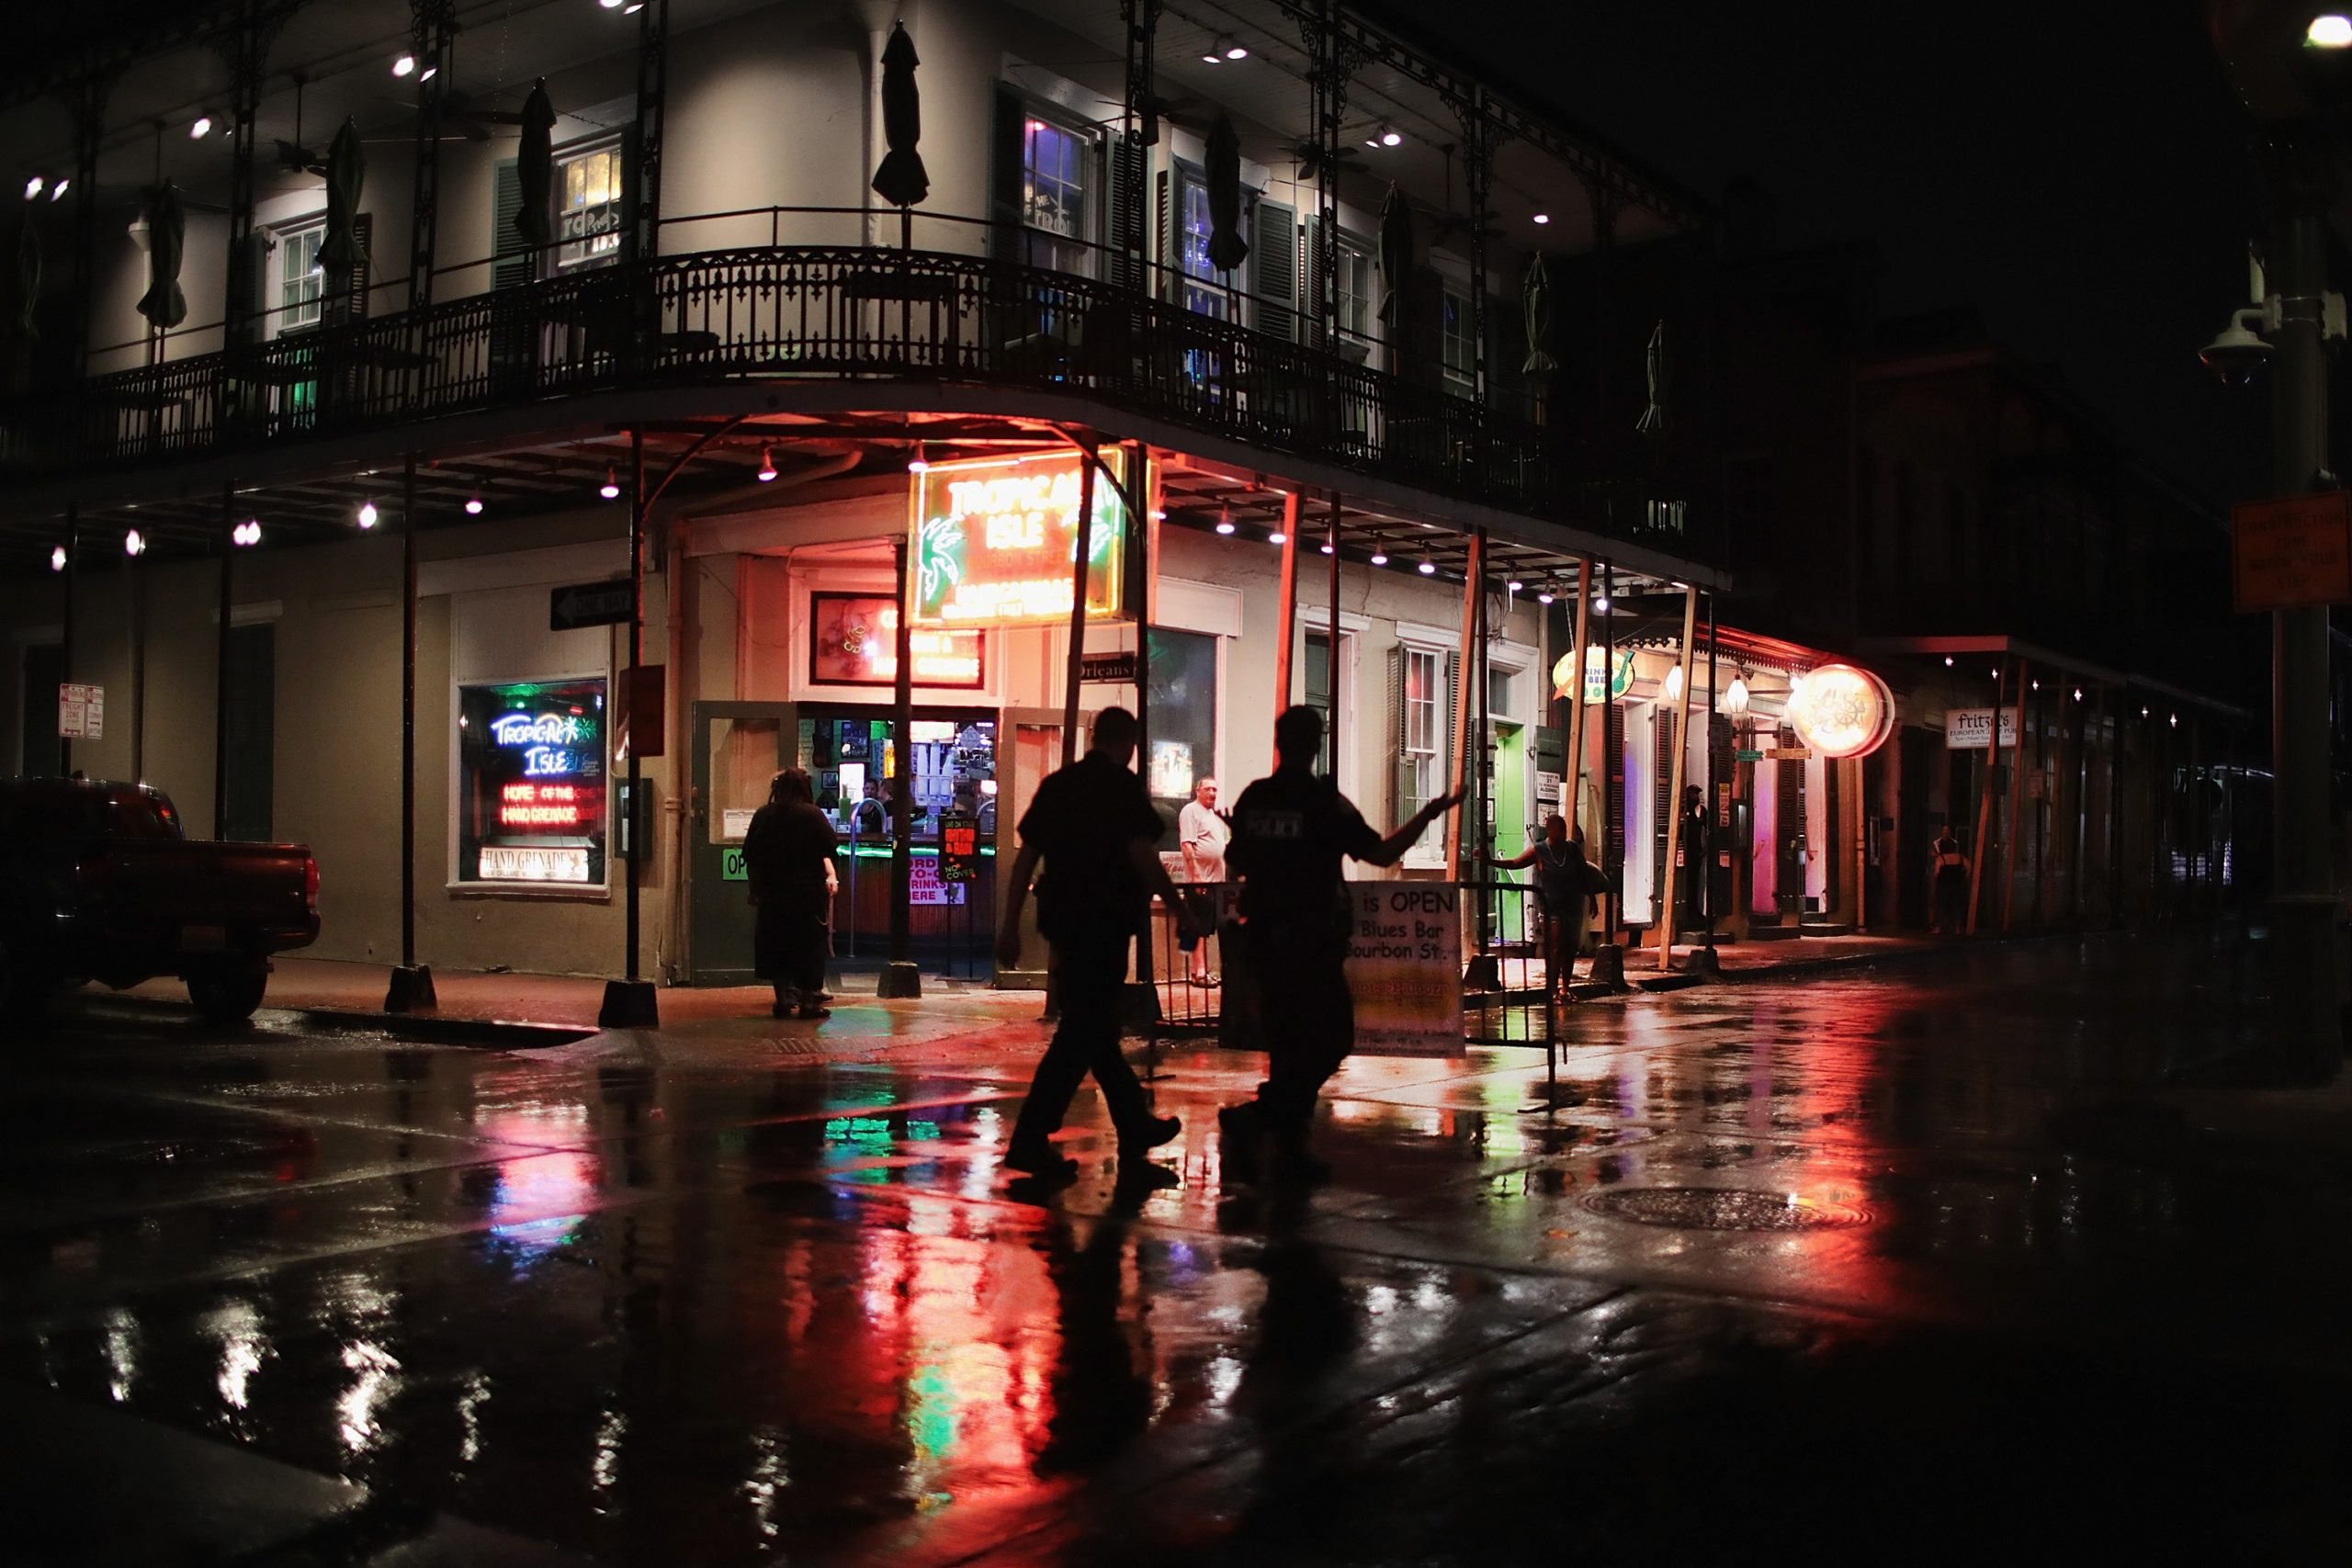 New Orleans Now Requiring Residents 12+ To Be Vaccinated Or Show Proof Of Negative COVID-19 Test In Order To Enter Restaurants, Bars, Gyms, Music Venues & More